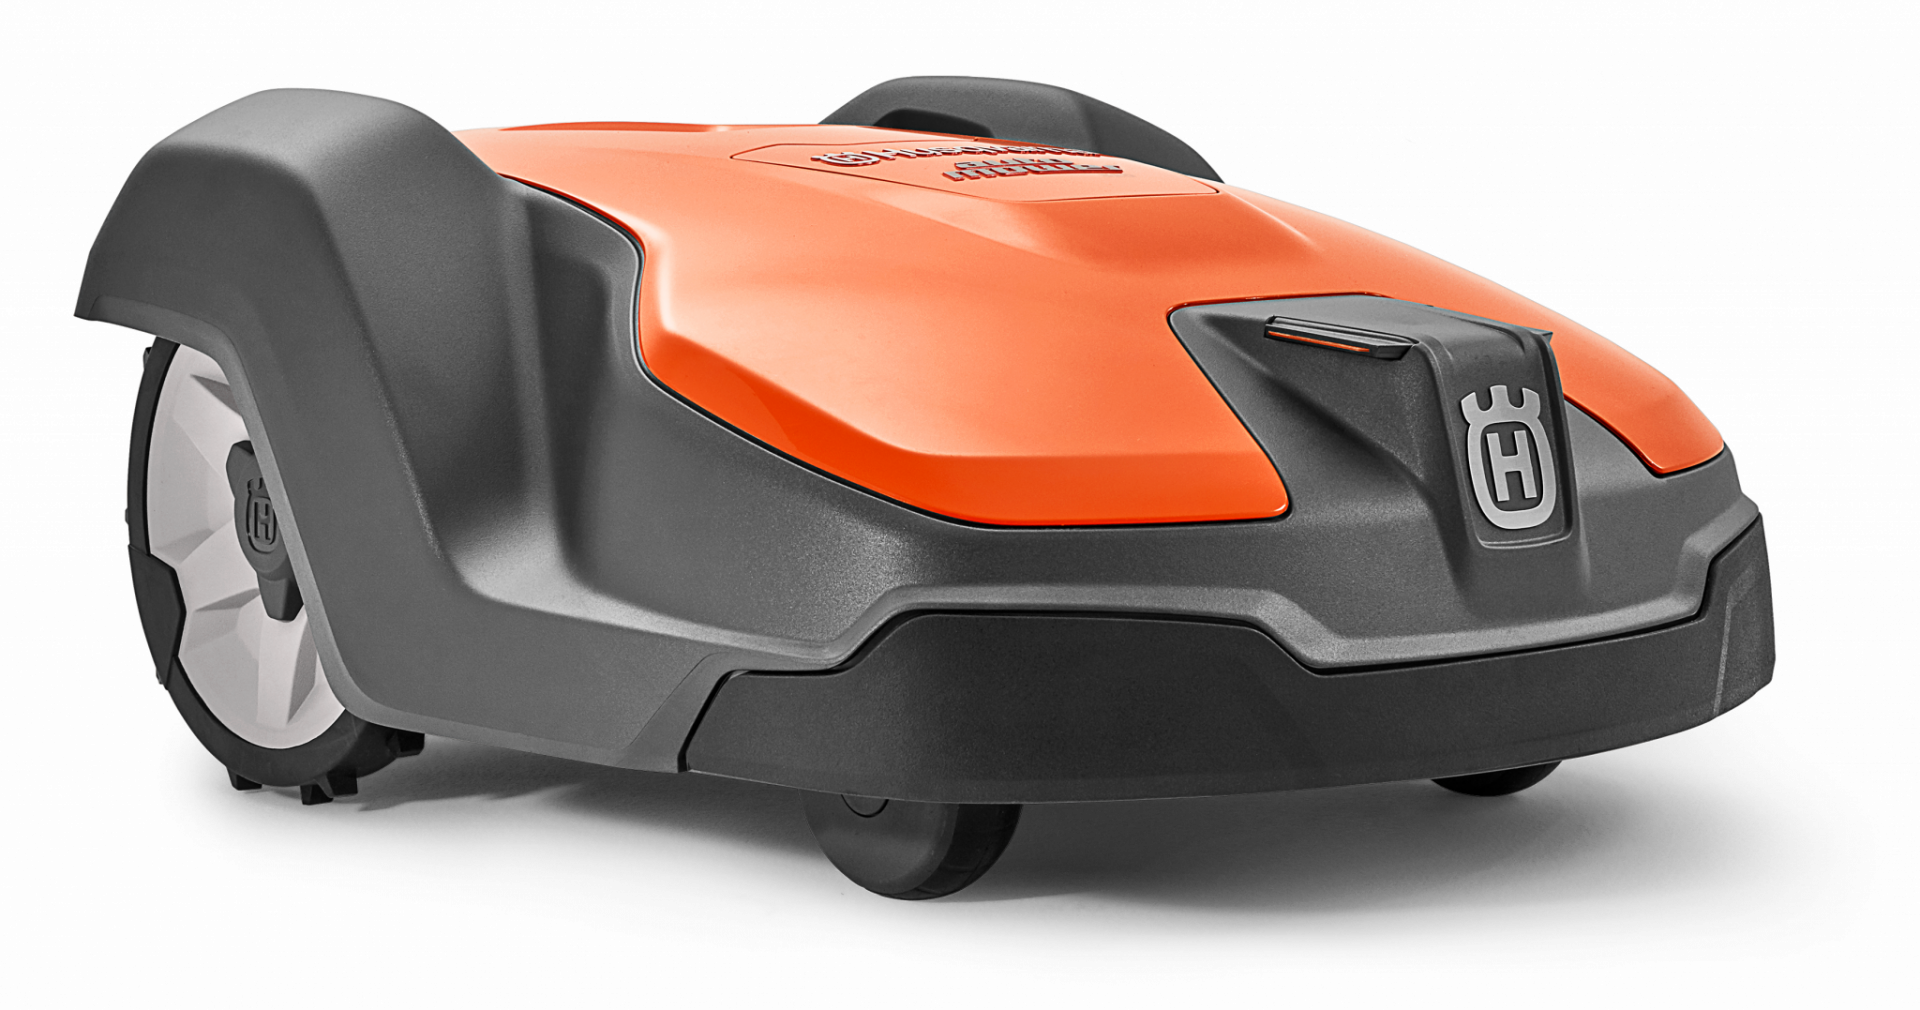 Husqvarna automower 520 robotic lawnmower radmore tucker for Husqvarna robot